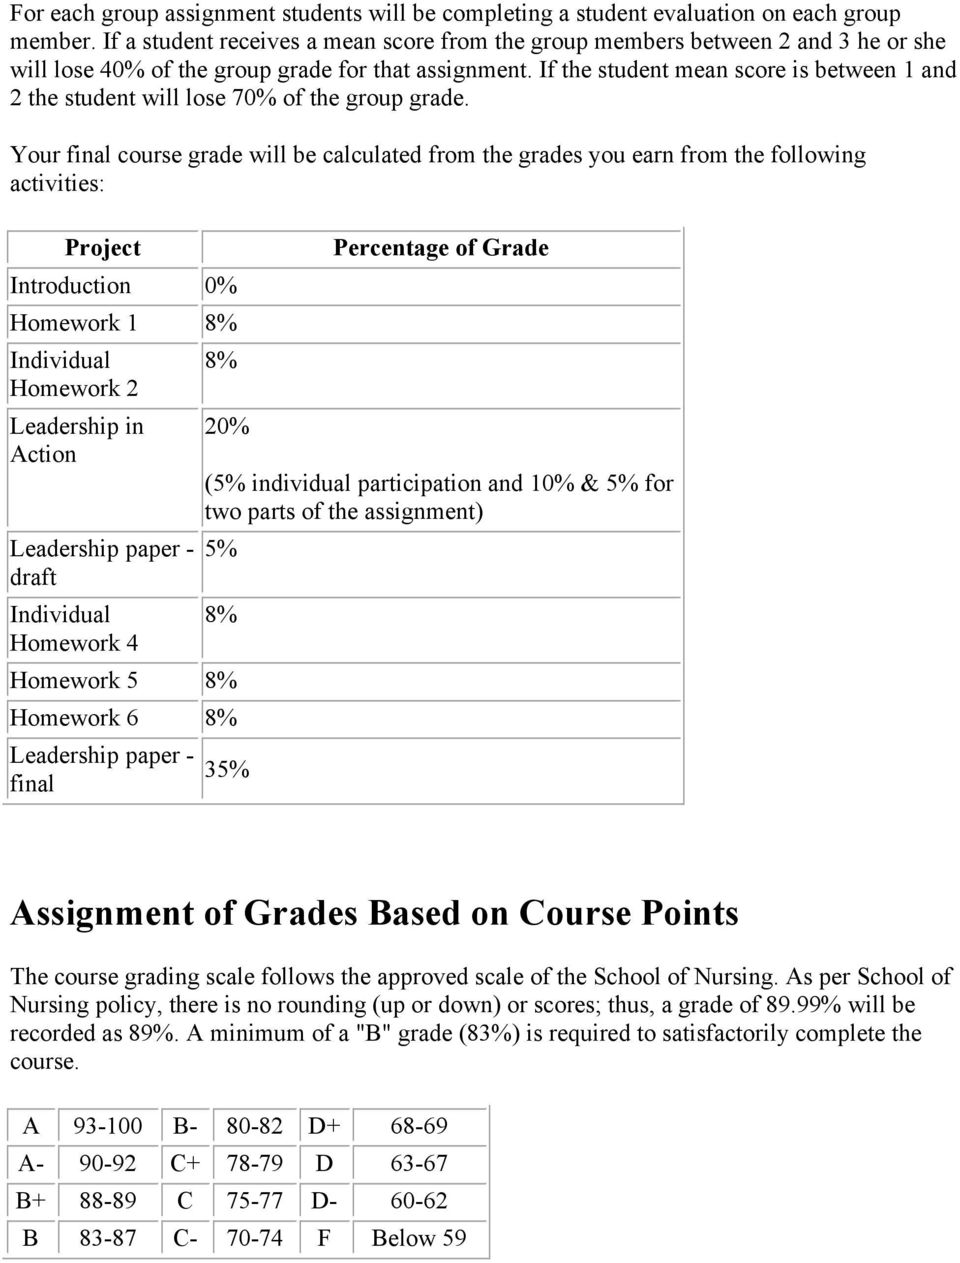 If the student mean score is between 1 and 2 the student will lose 70% of the group grade.